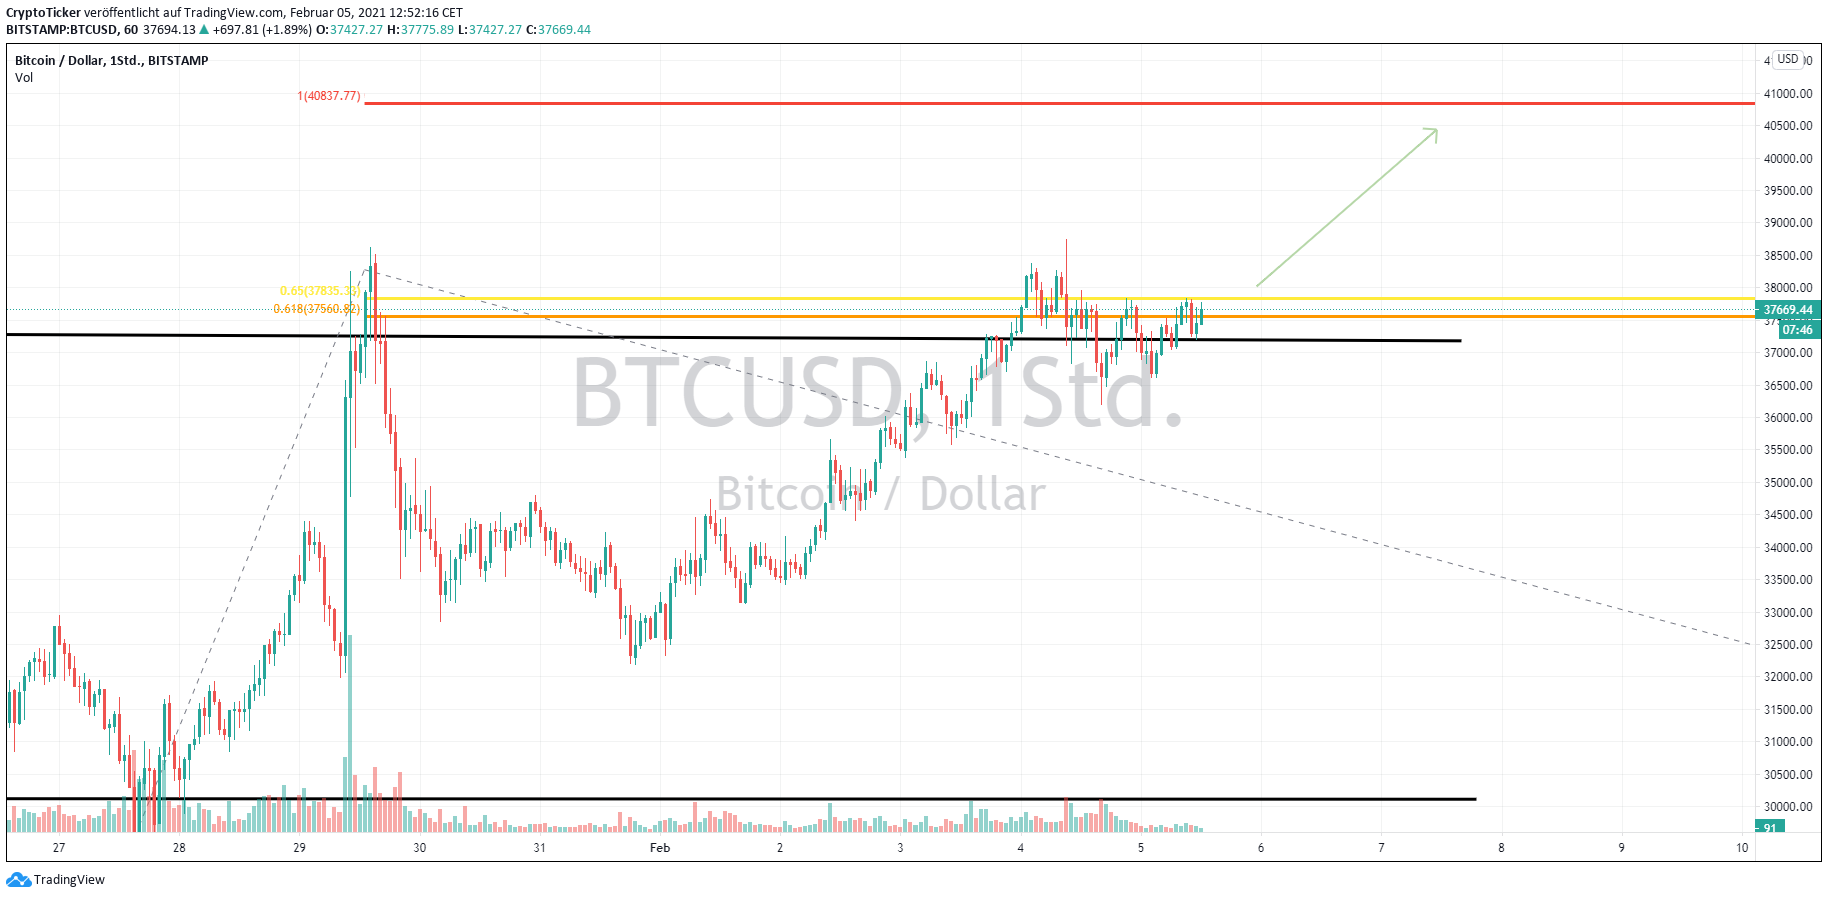 BTC/USD 1-hour chart showing BTC's price prediction to 40K